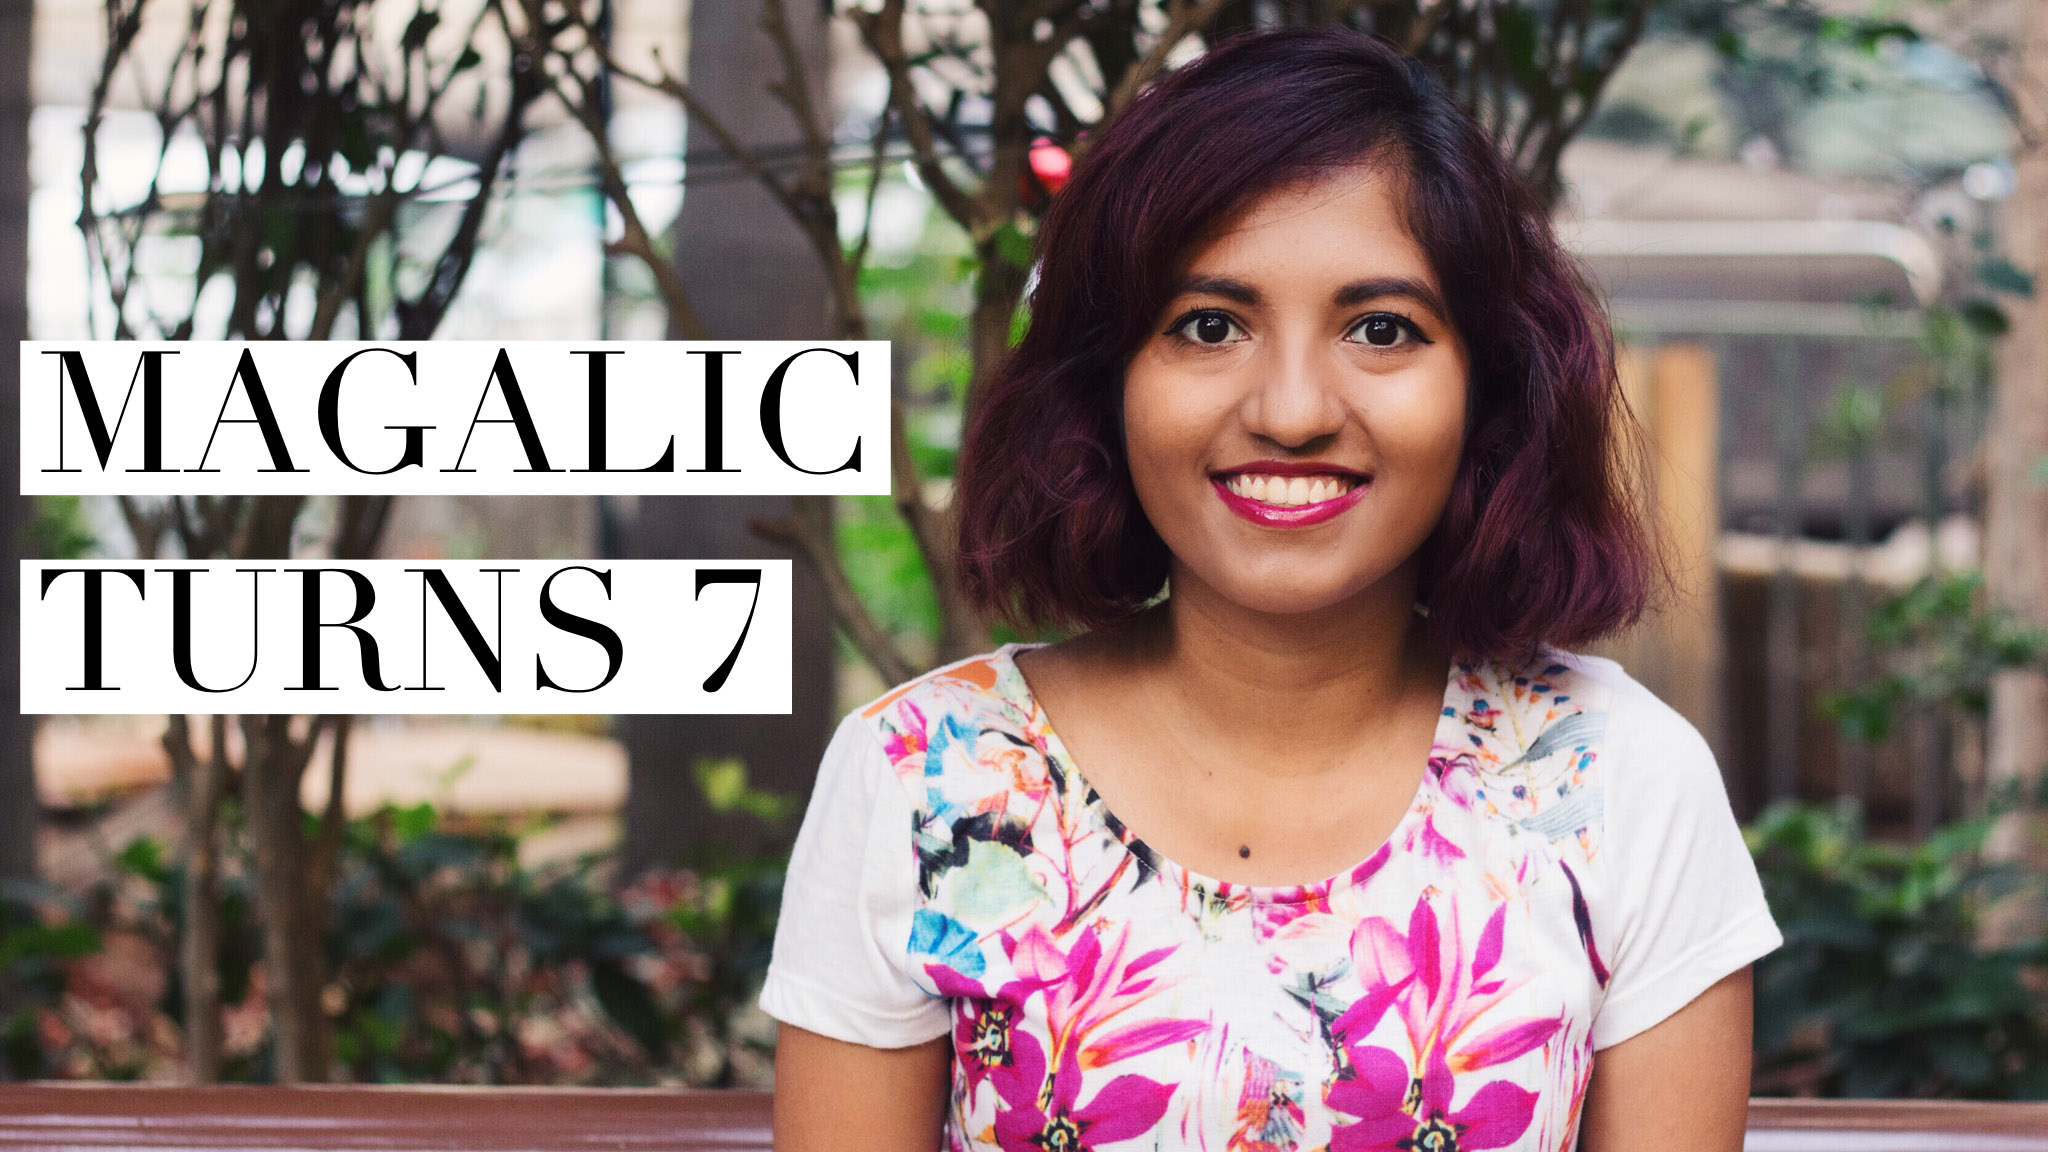 #MagalicTurns7 Video Announcement | Magali Vaz Blog 7th Anniversary